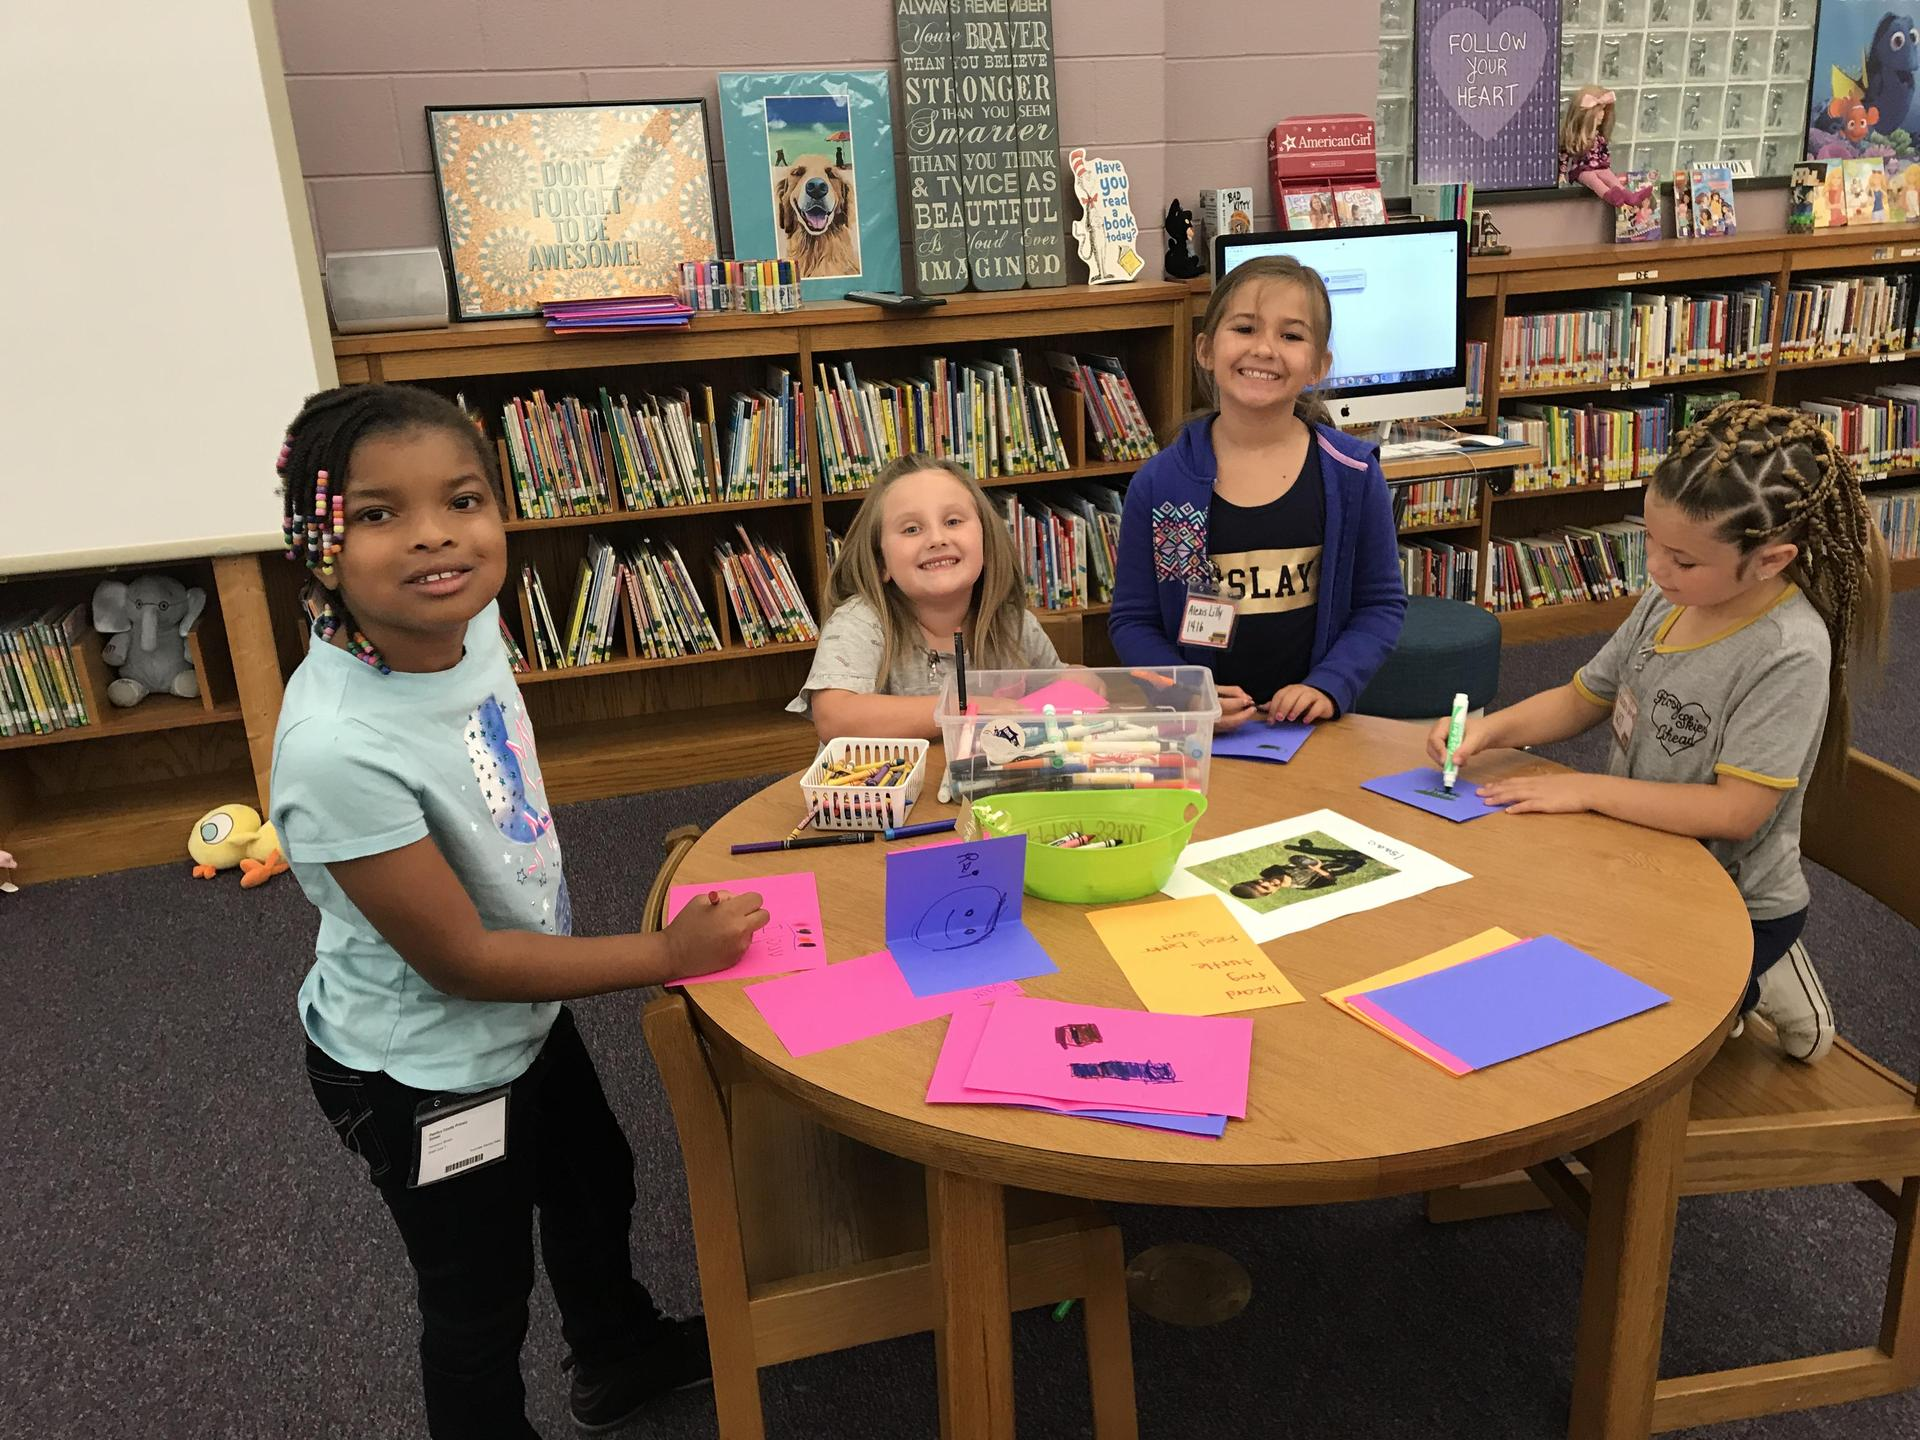 Girls drawing and making cards